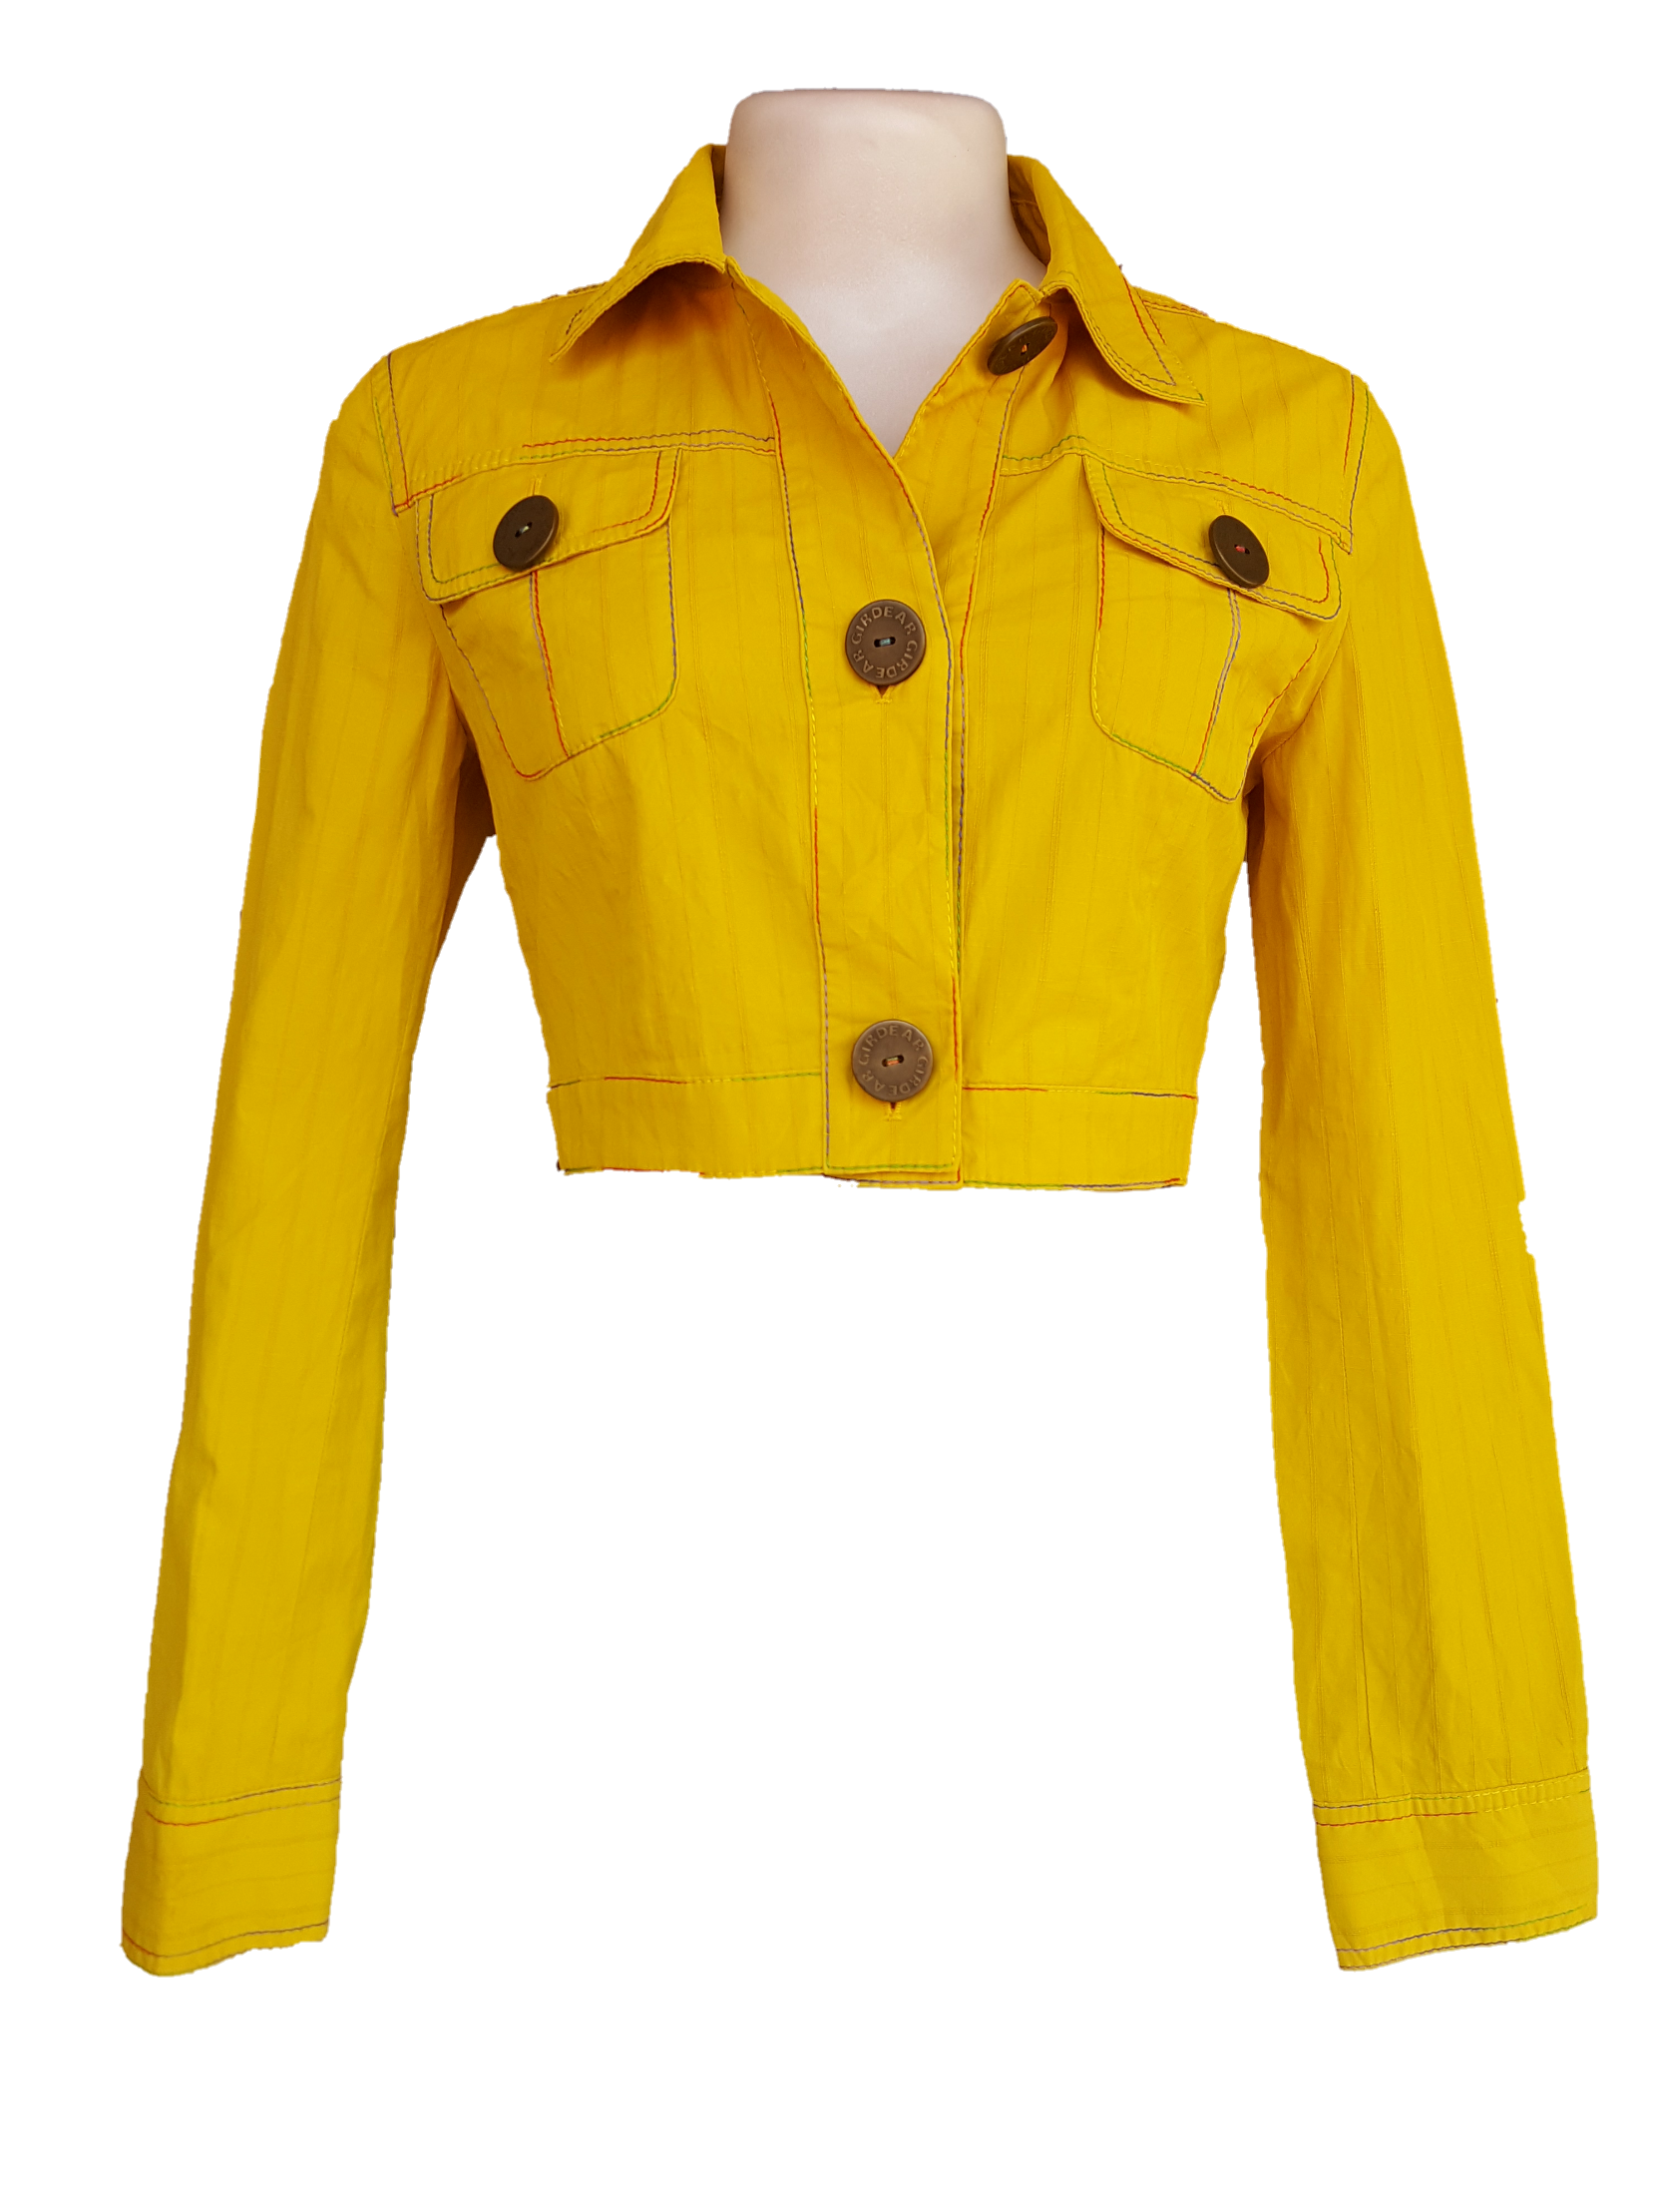 Yellow crop top jacket.